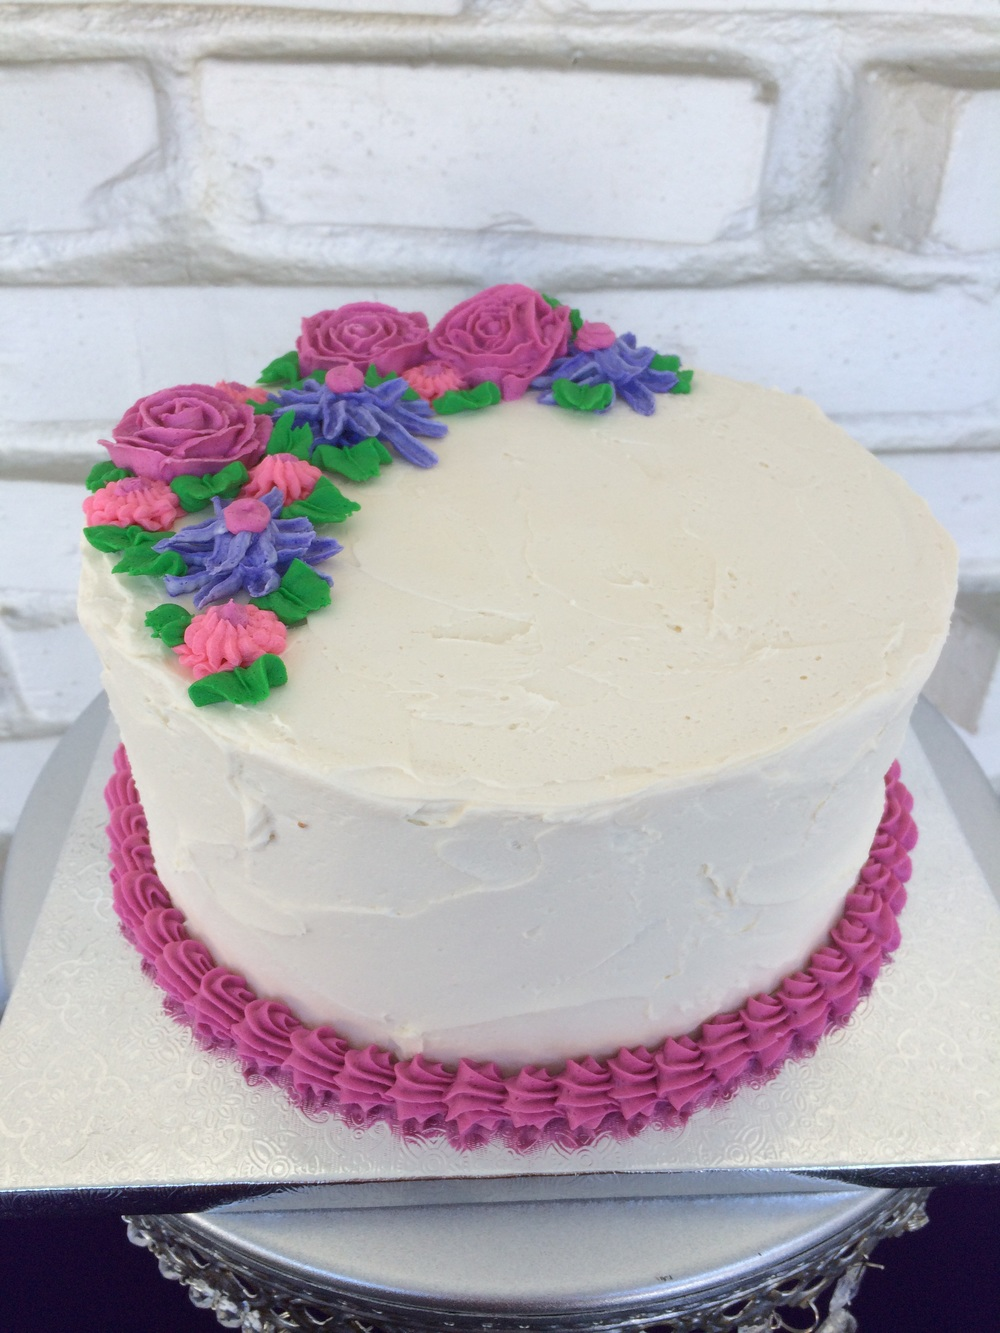 Lavender cake filled with creamed honey buttercream and adorned with buttercream flowers